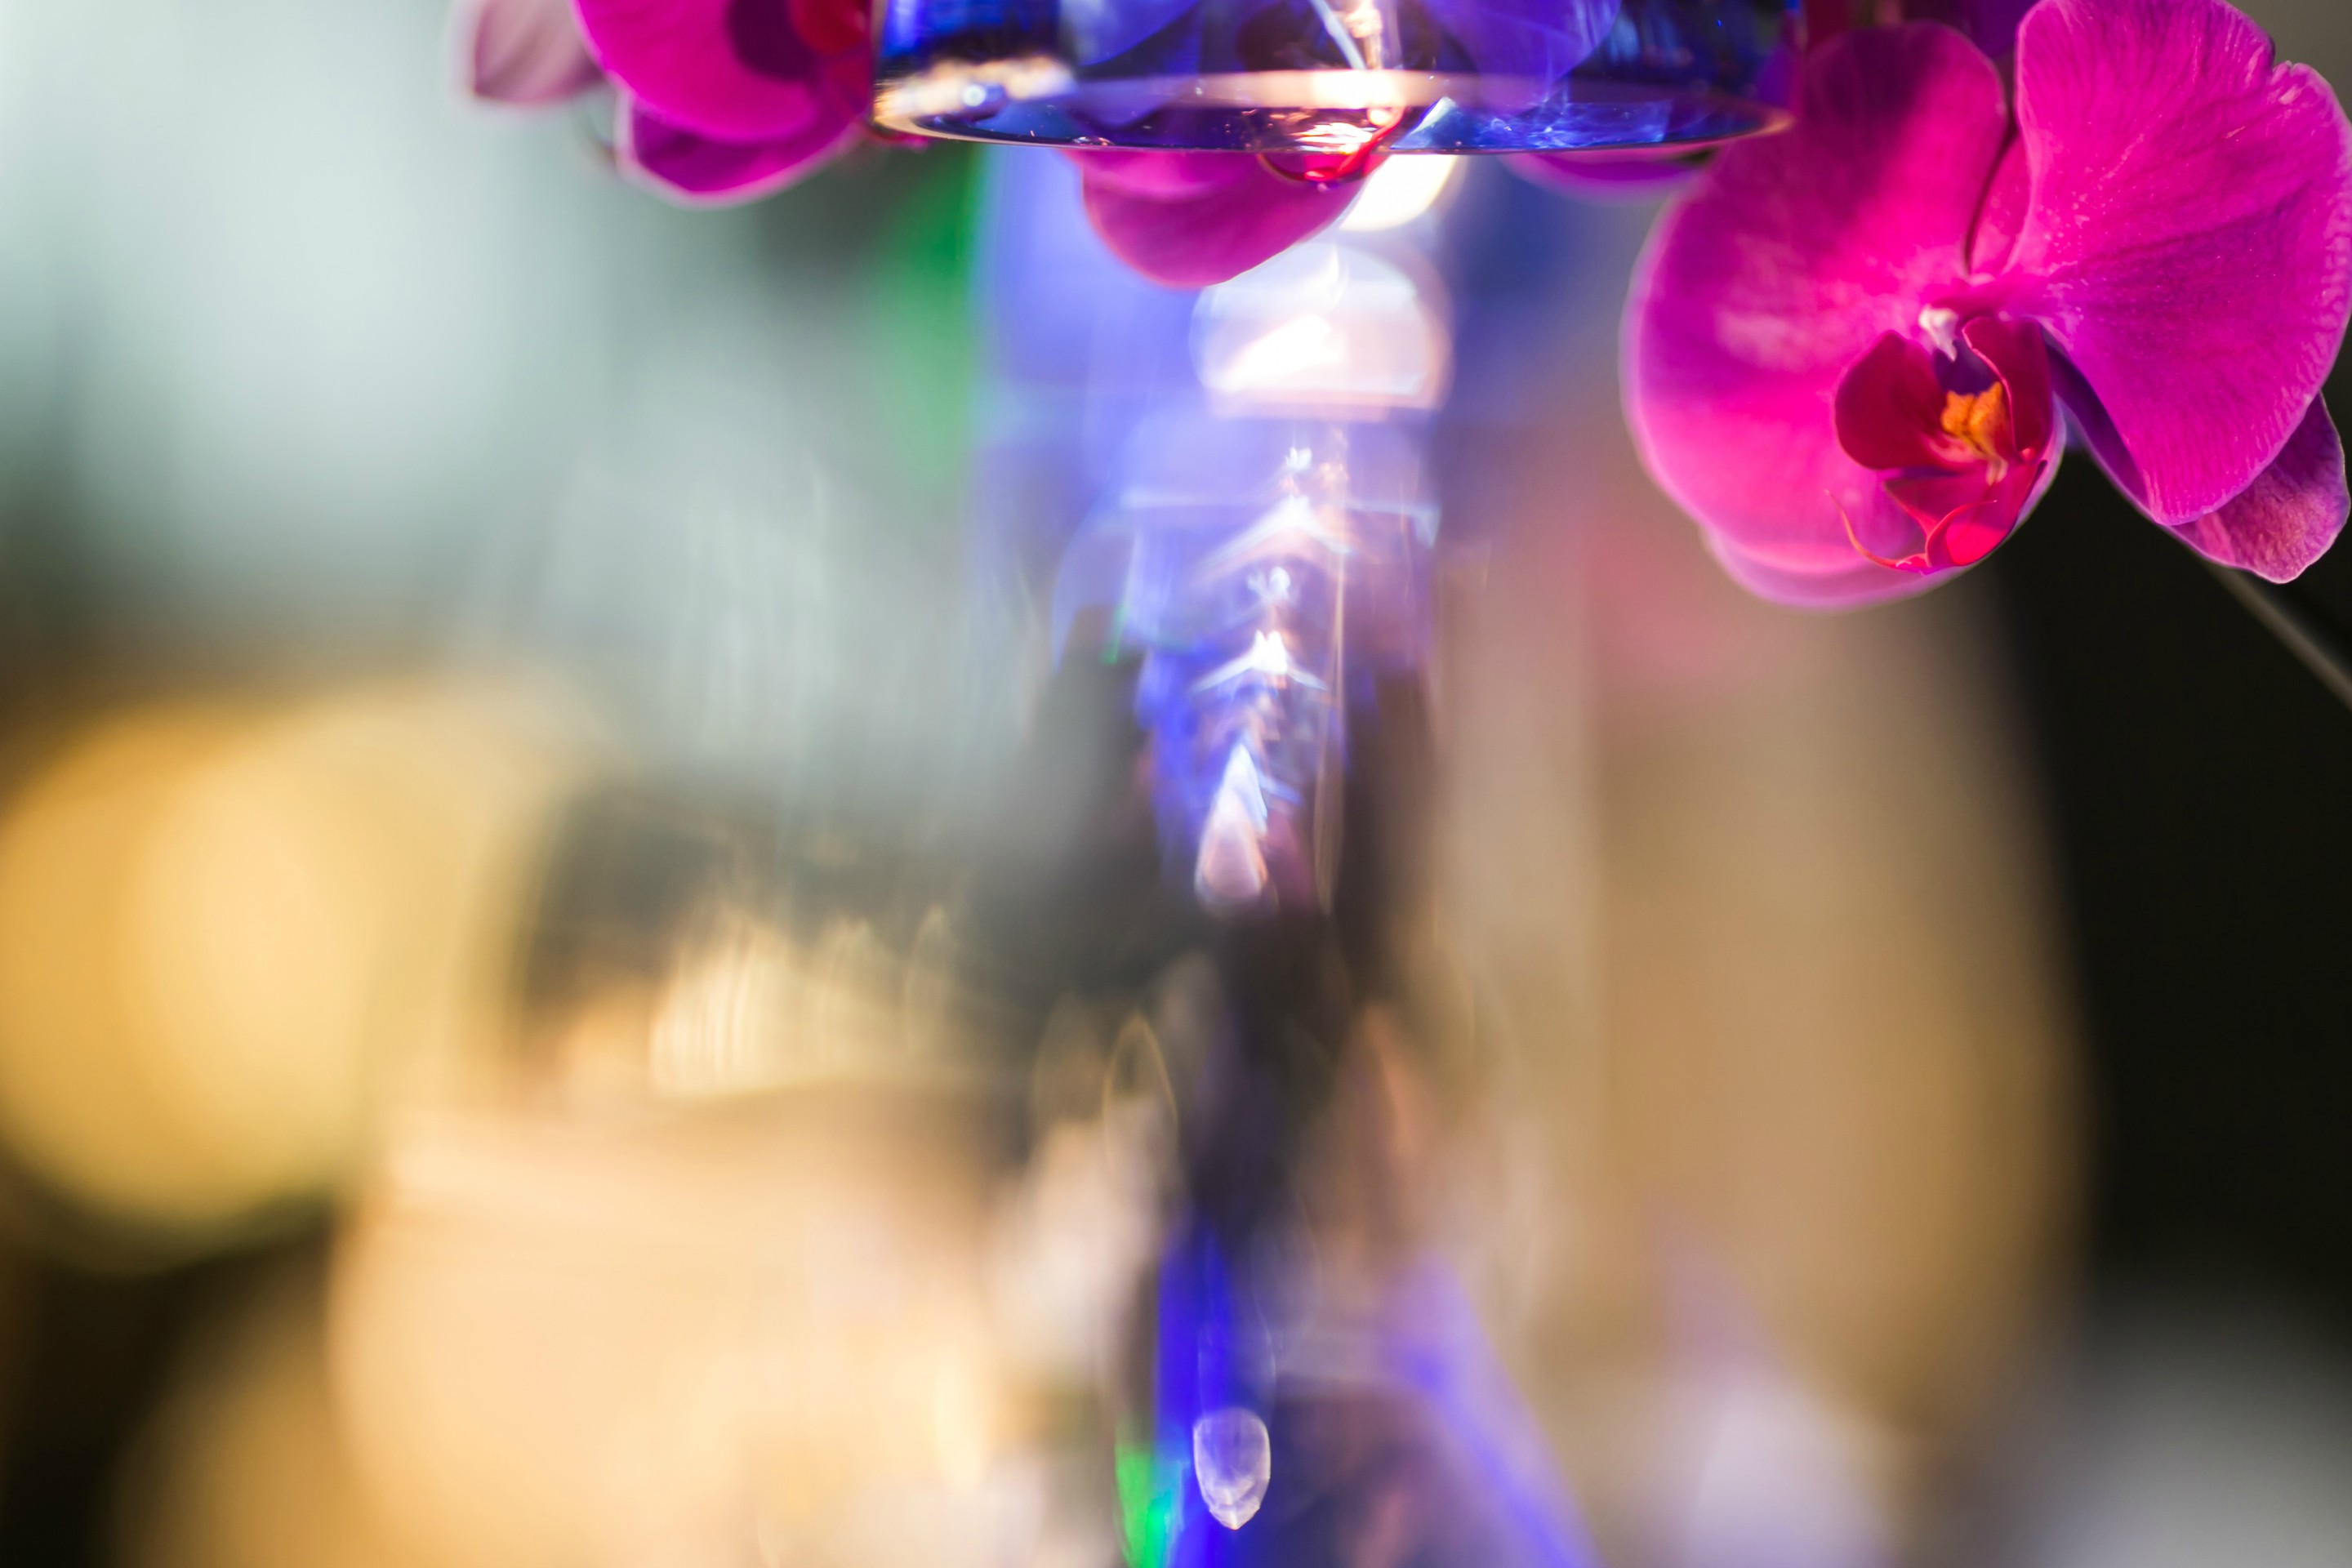 hakkasan-bokeh-effect-over-flowers